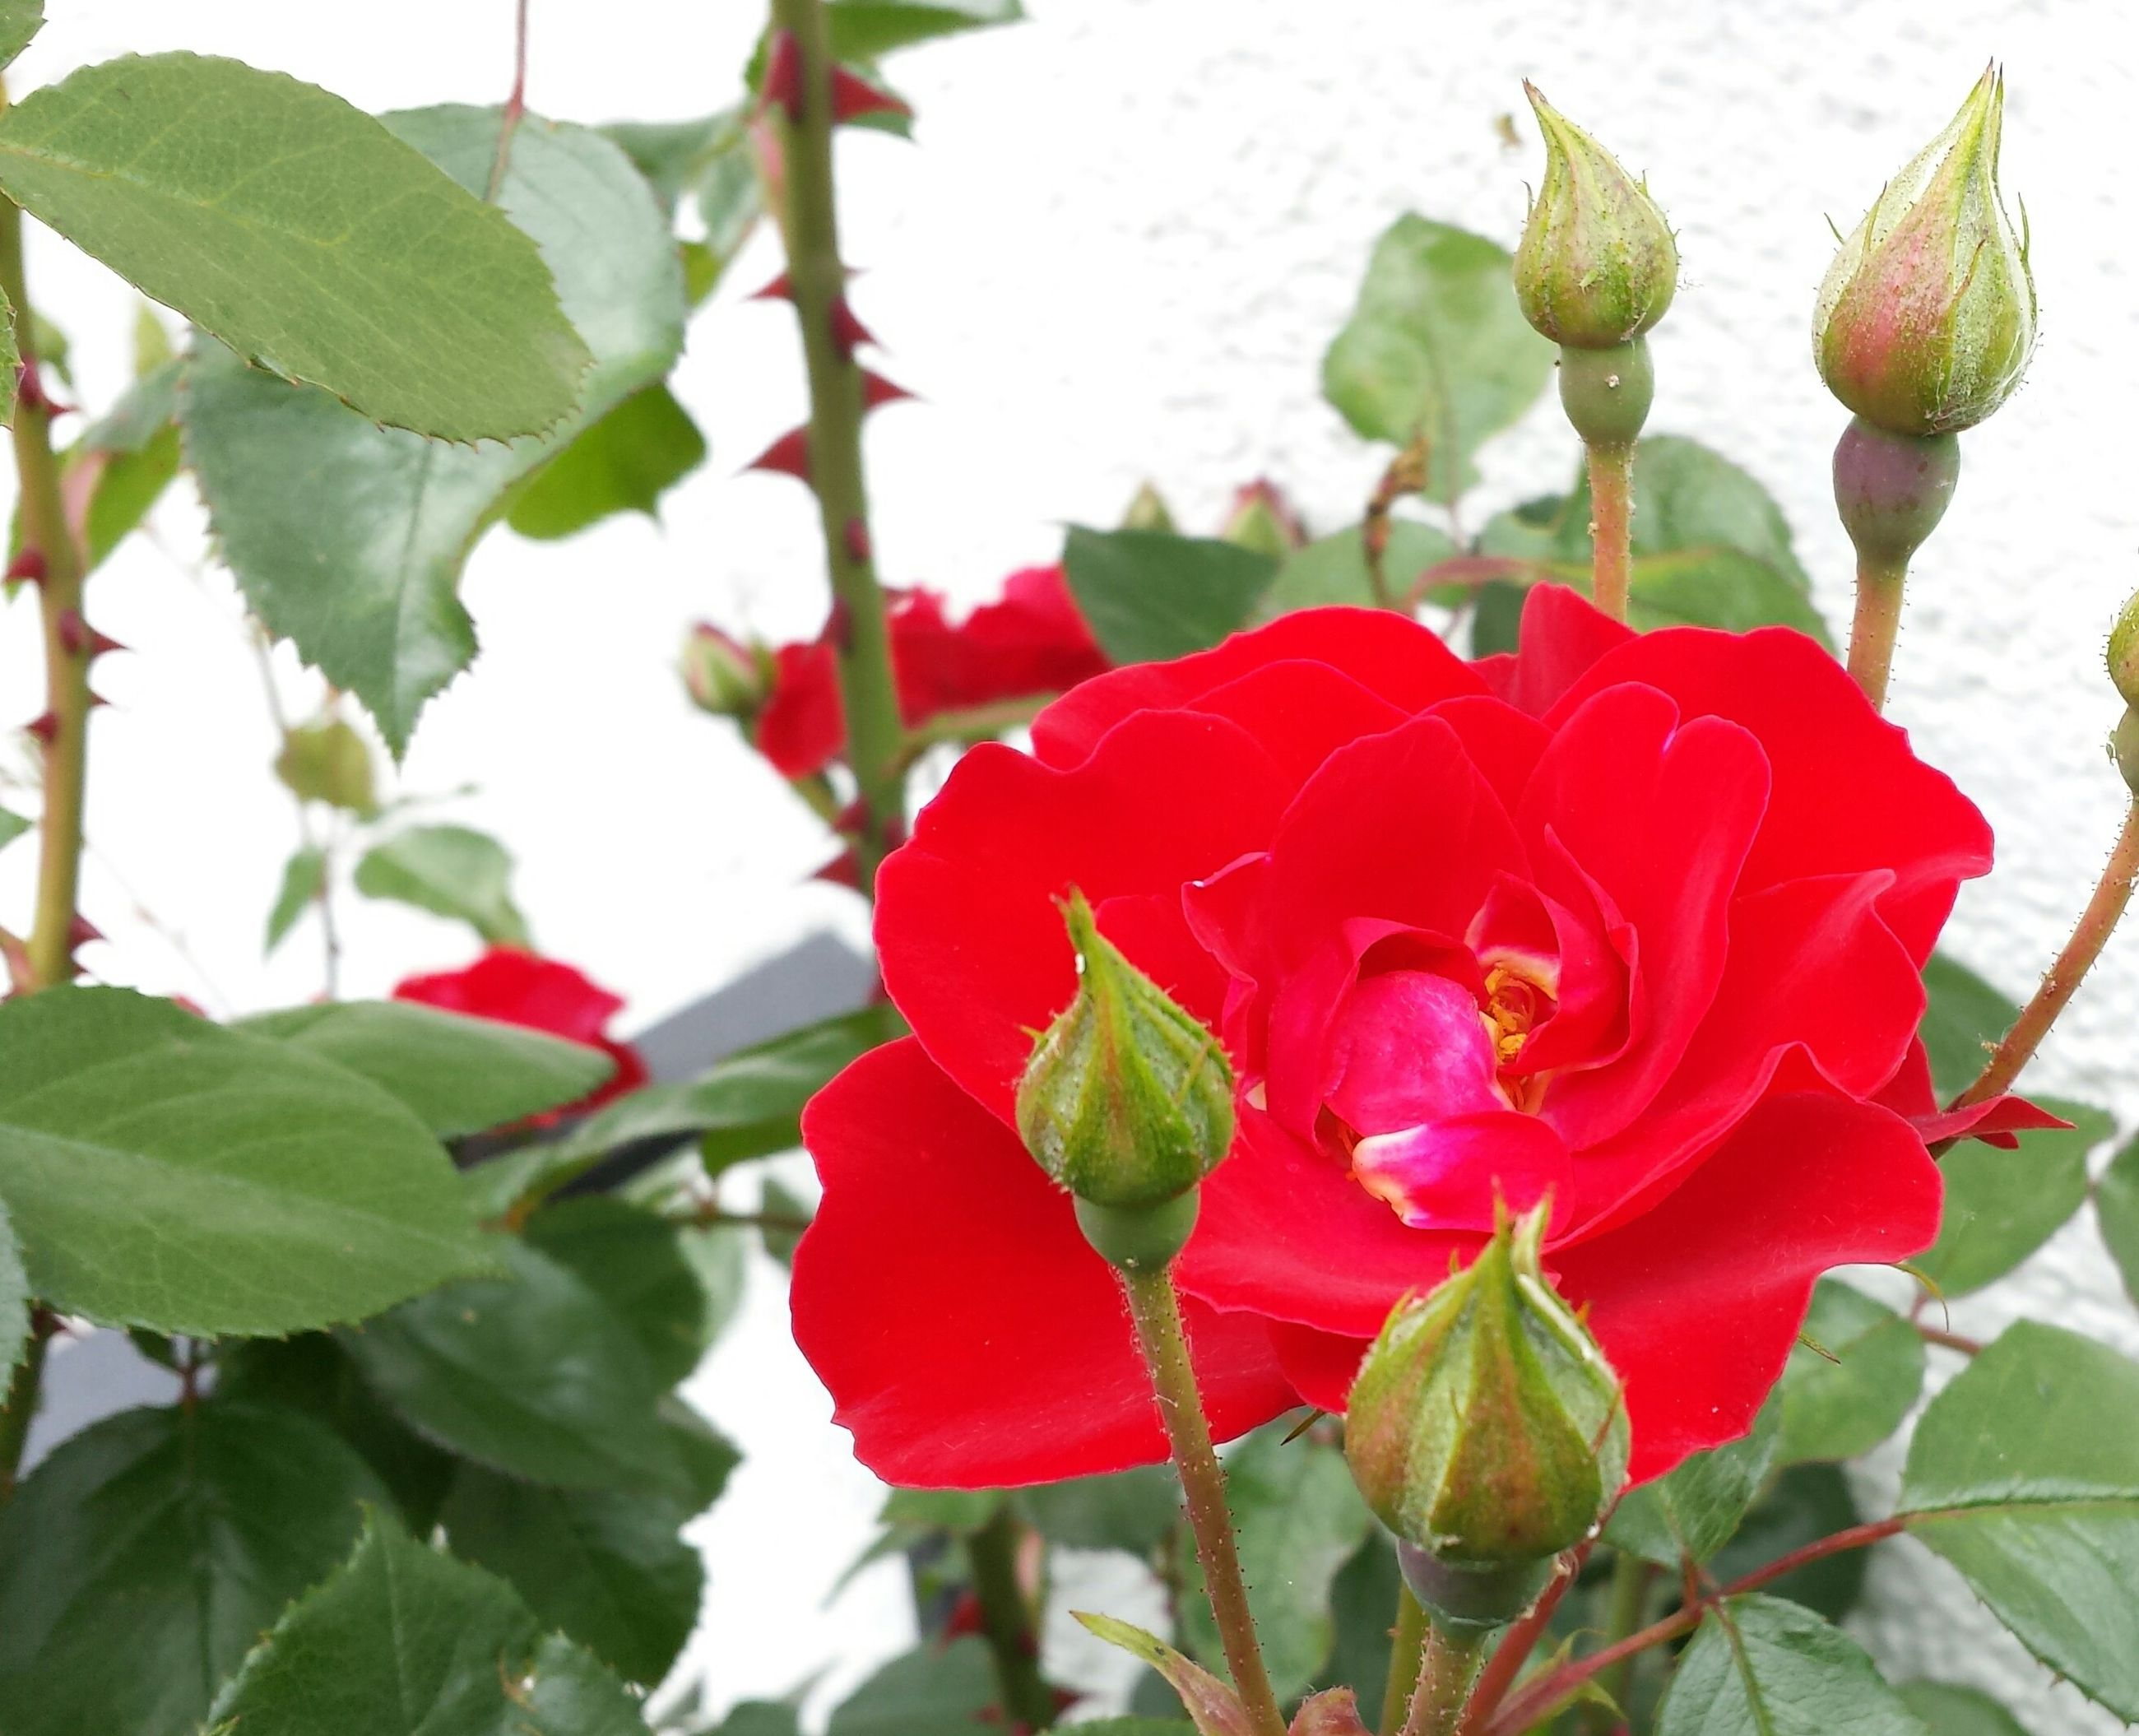 flower, petal, freshness, leaf, growth, fragility, flower head, red, close-up, beauty in nature, plant, rose - flower, blooming, nature, focus on foreground, single flower, in bloom, blossom, bud, botany